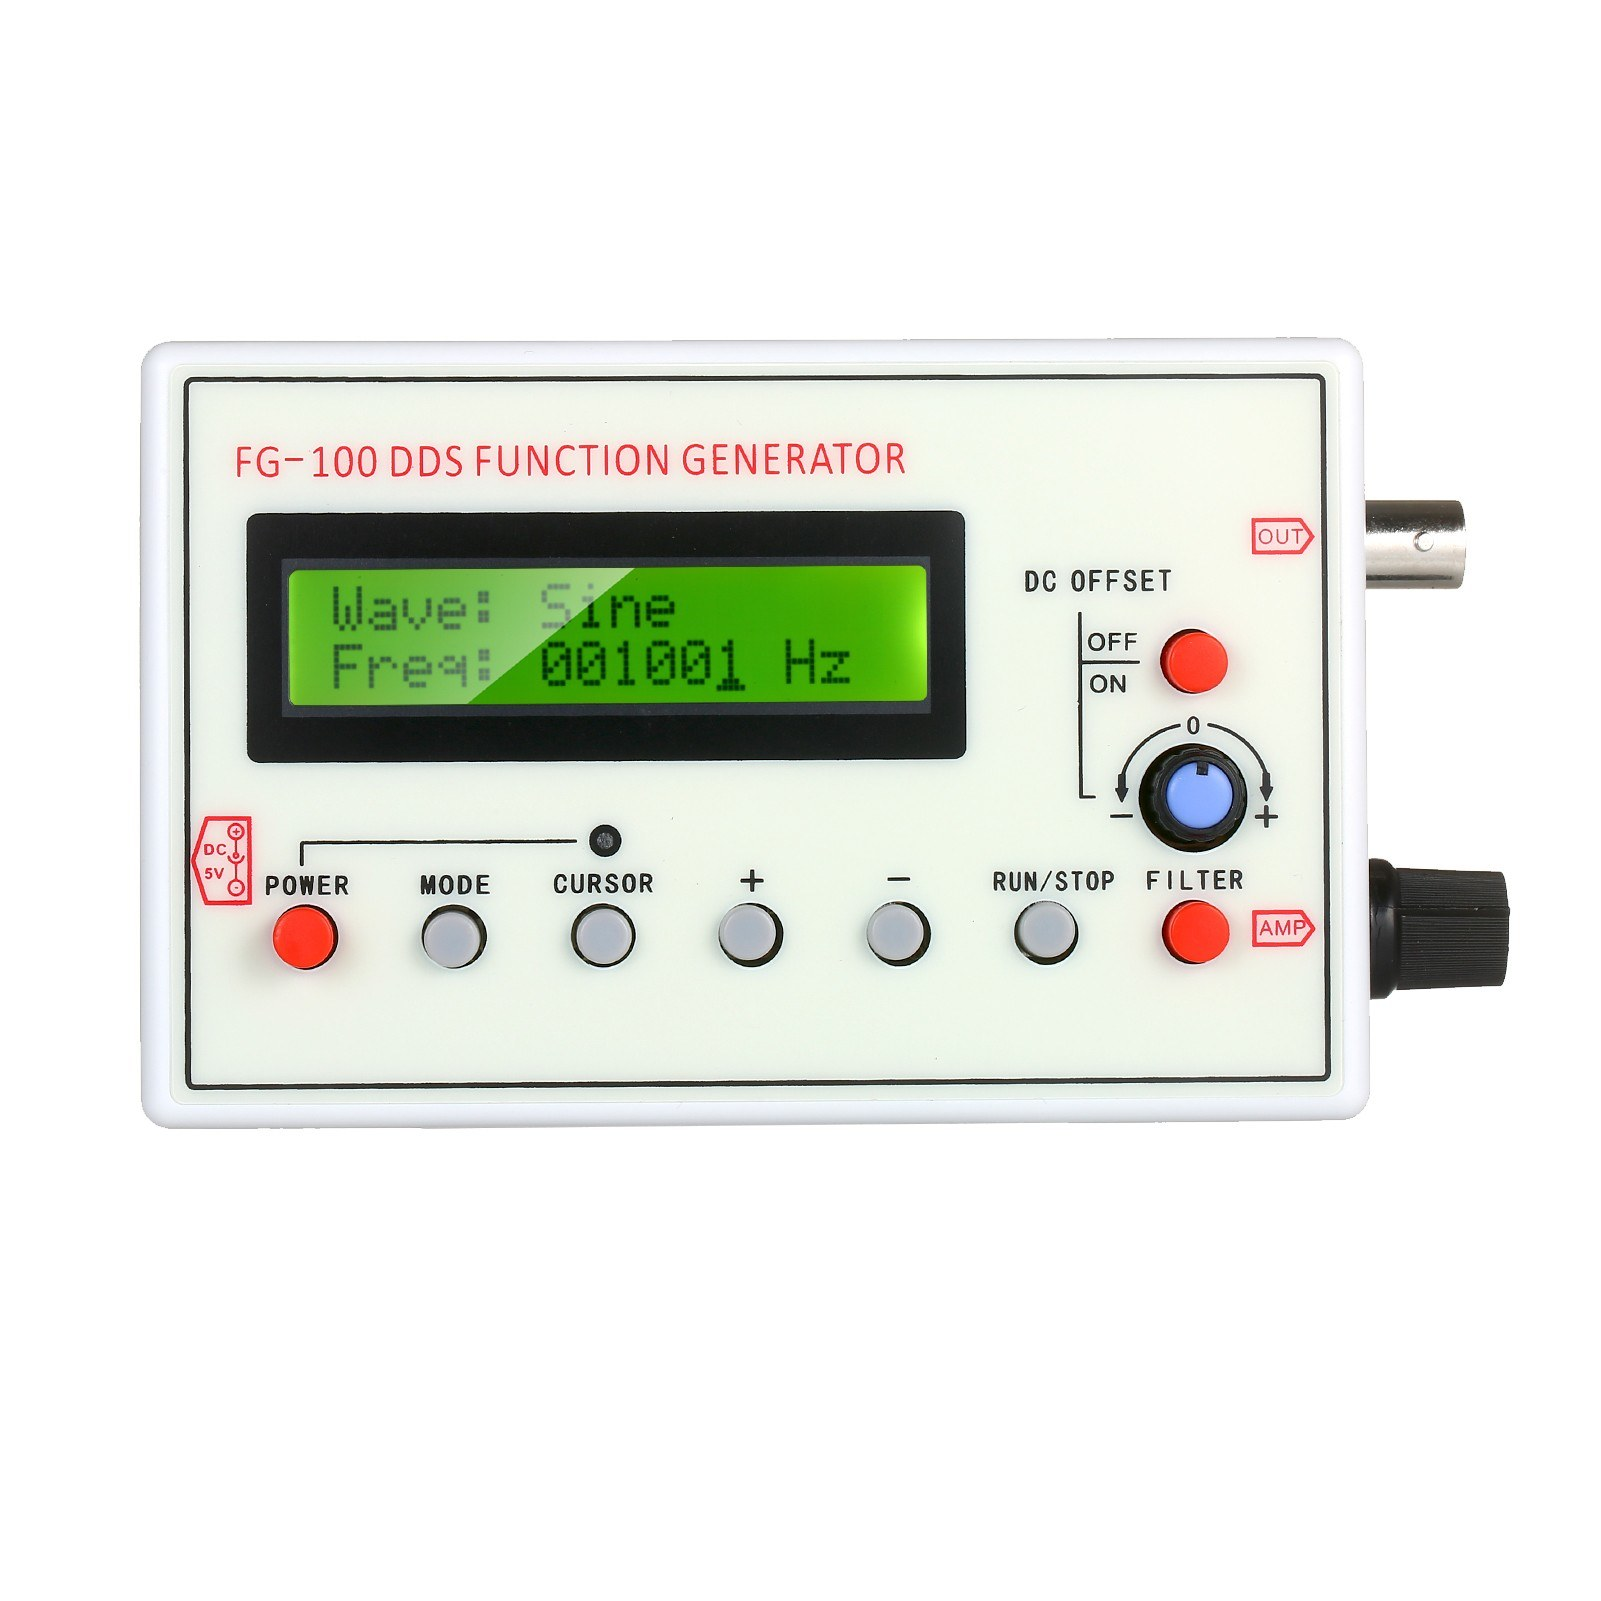 tomtop.com - 27% OFF 1HZ-500KHZ FG-100 DDS Functional Signal Generator, Limited Offers $46.99